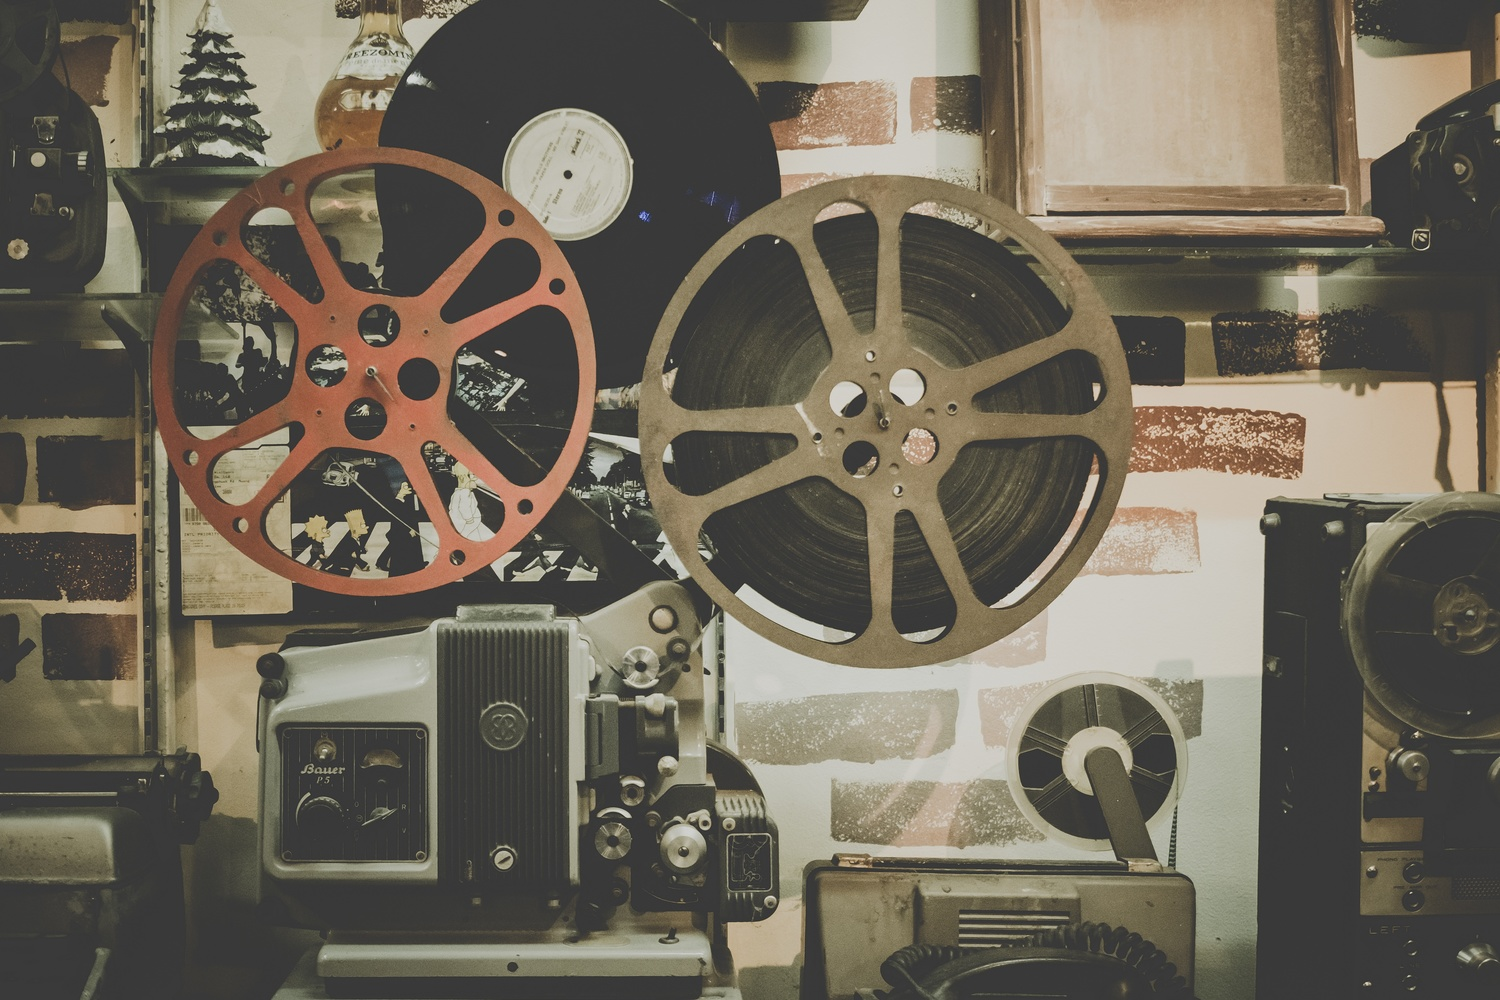 Film Projector and Vinyl Record